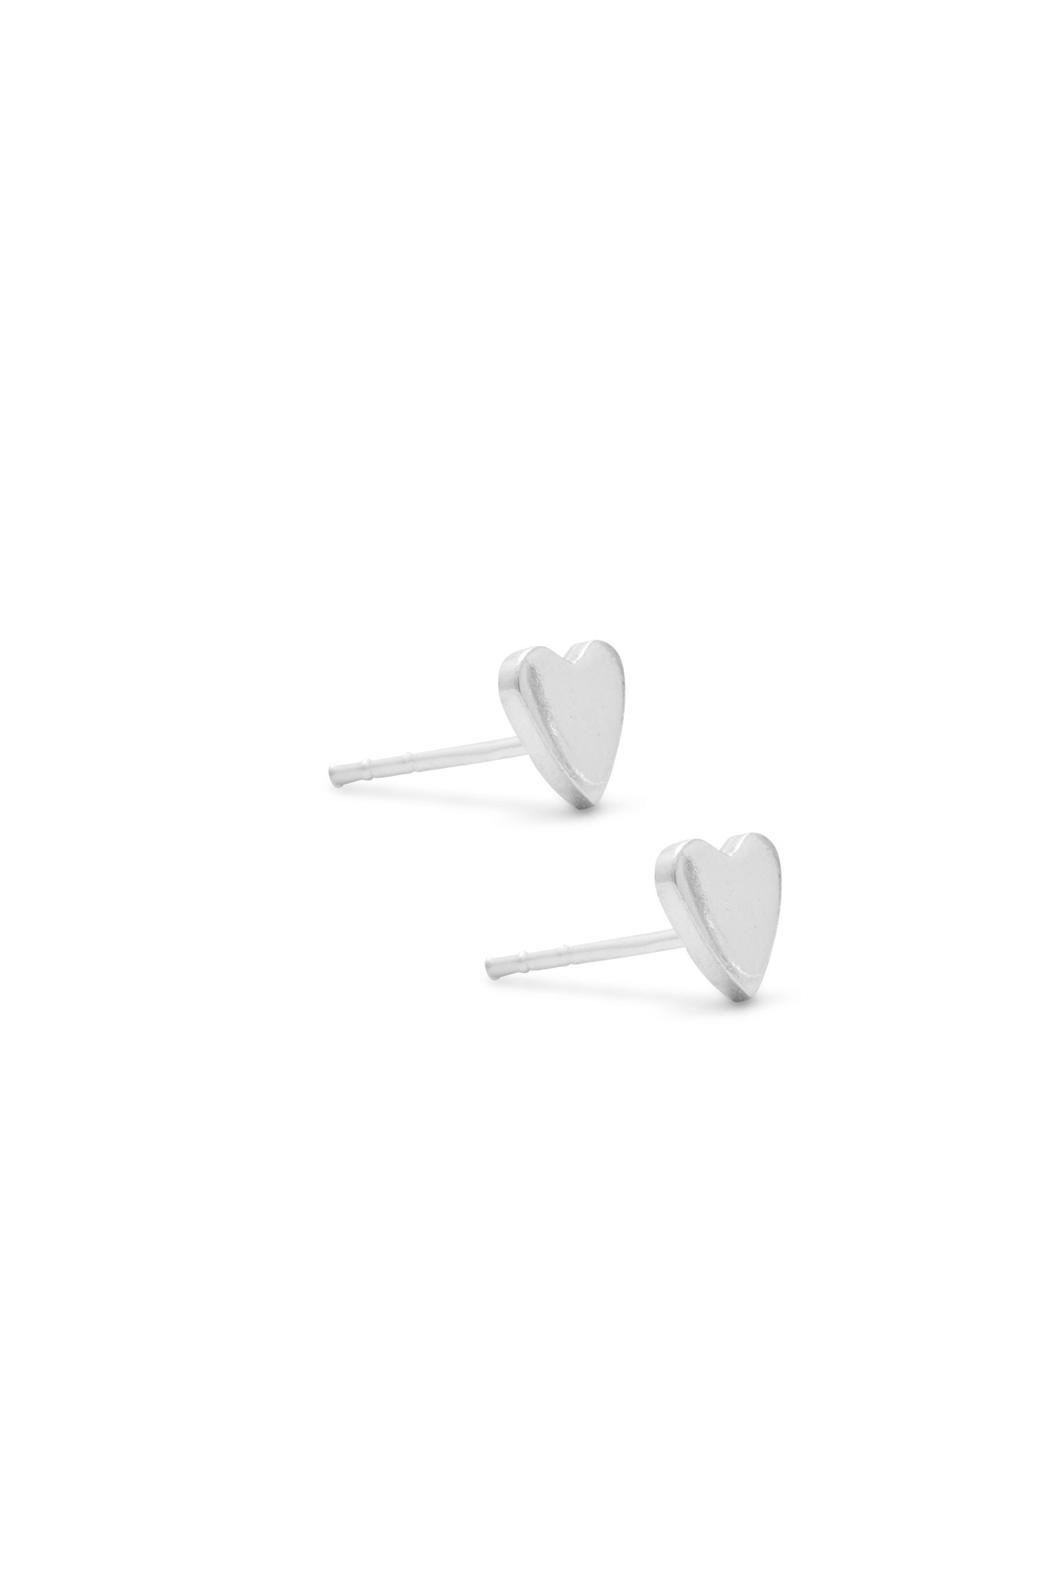 Wild Lilies Jewelry  Silver Heart Studs - Front Full Image